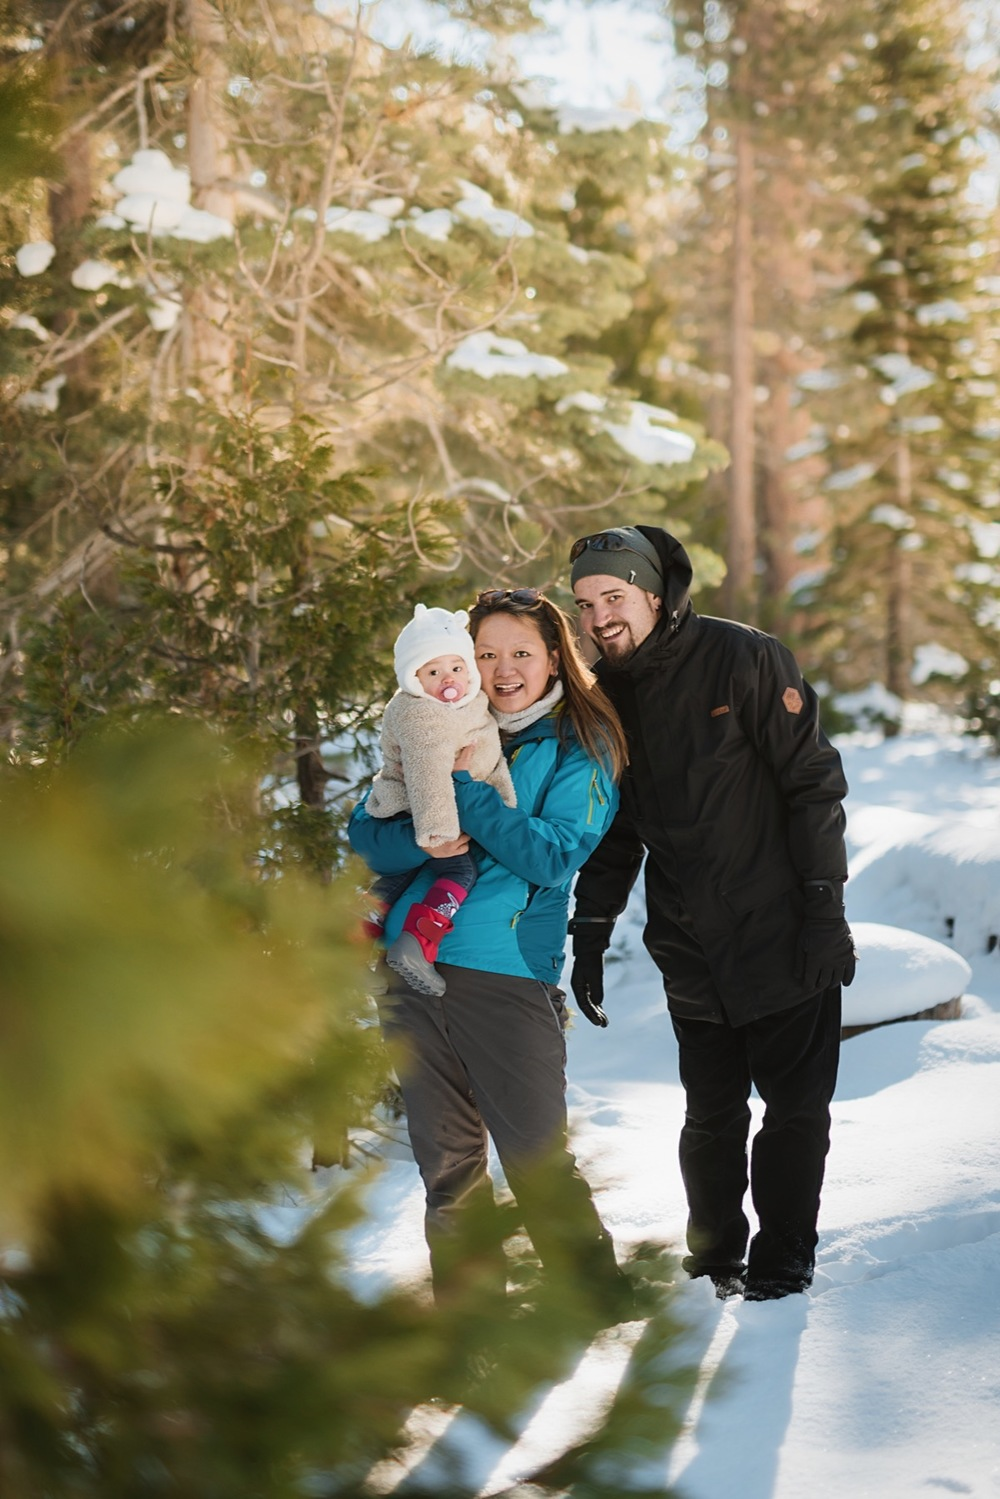 A Family Retreat in Snowy Lake Tahoe | Lake Tahoe Vacation Photographer